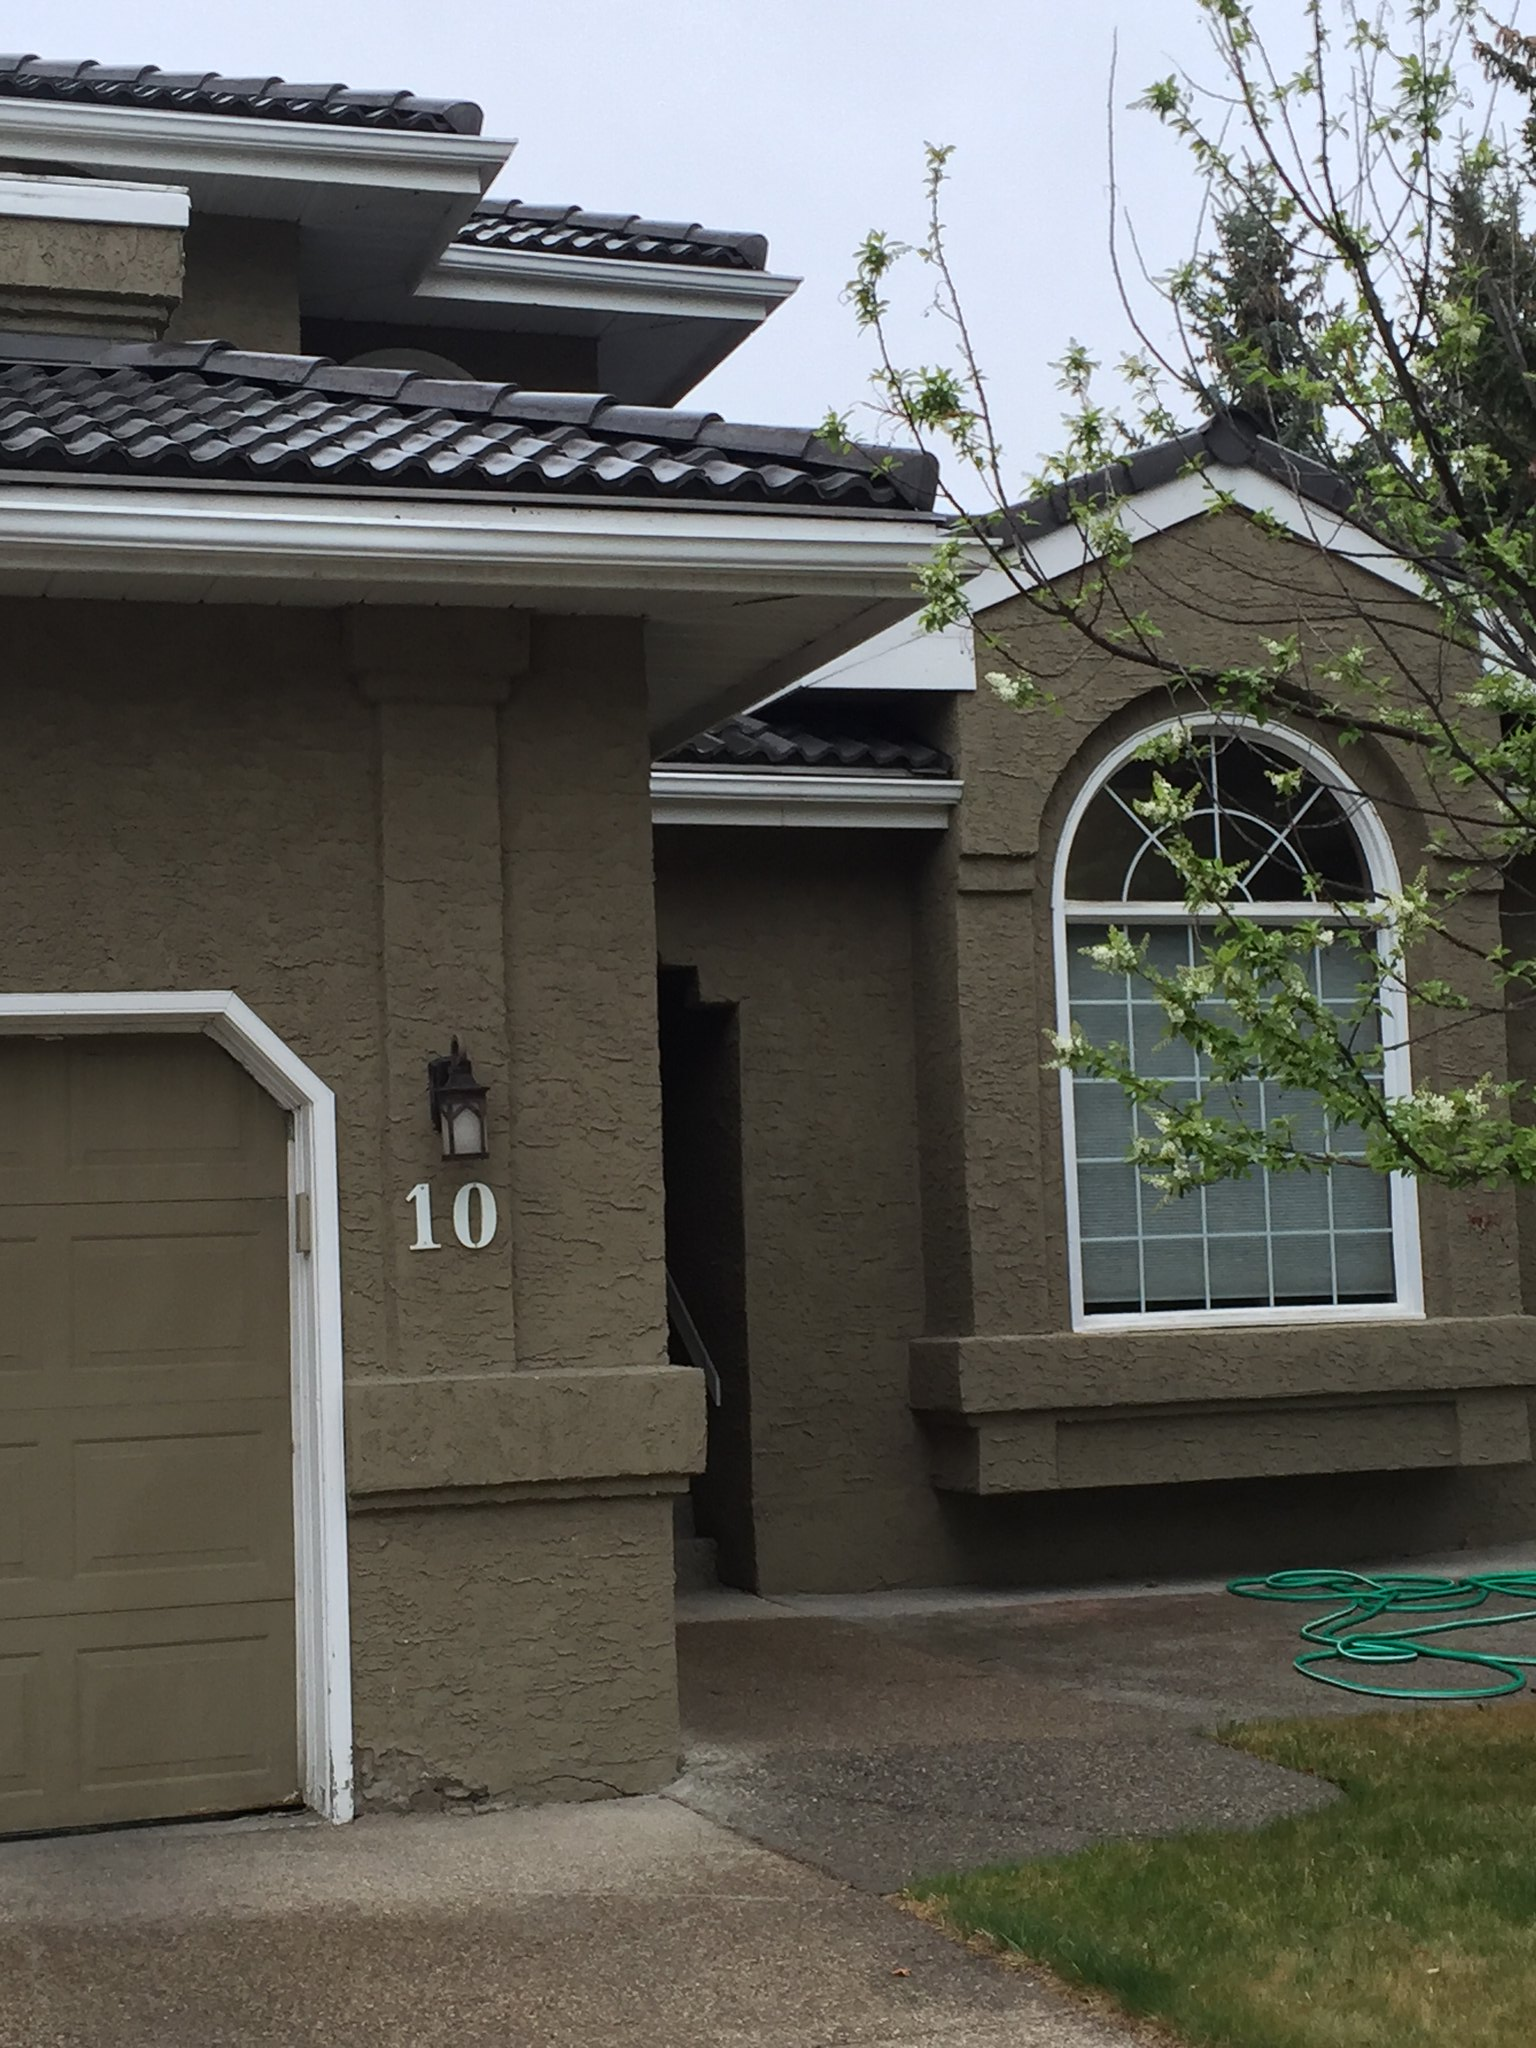 stucco exterior painted warm brown with white soffit and facia